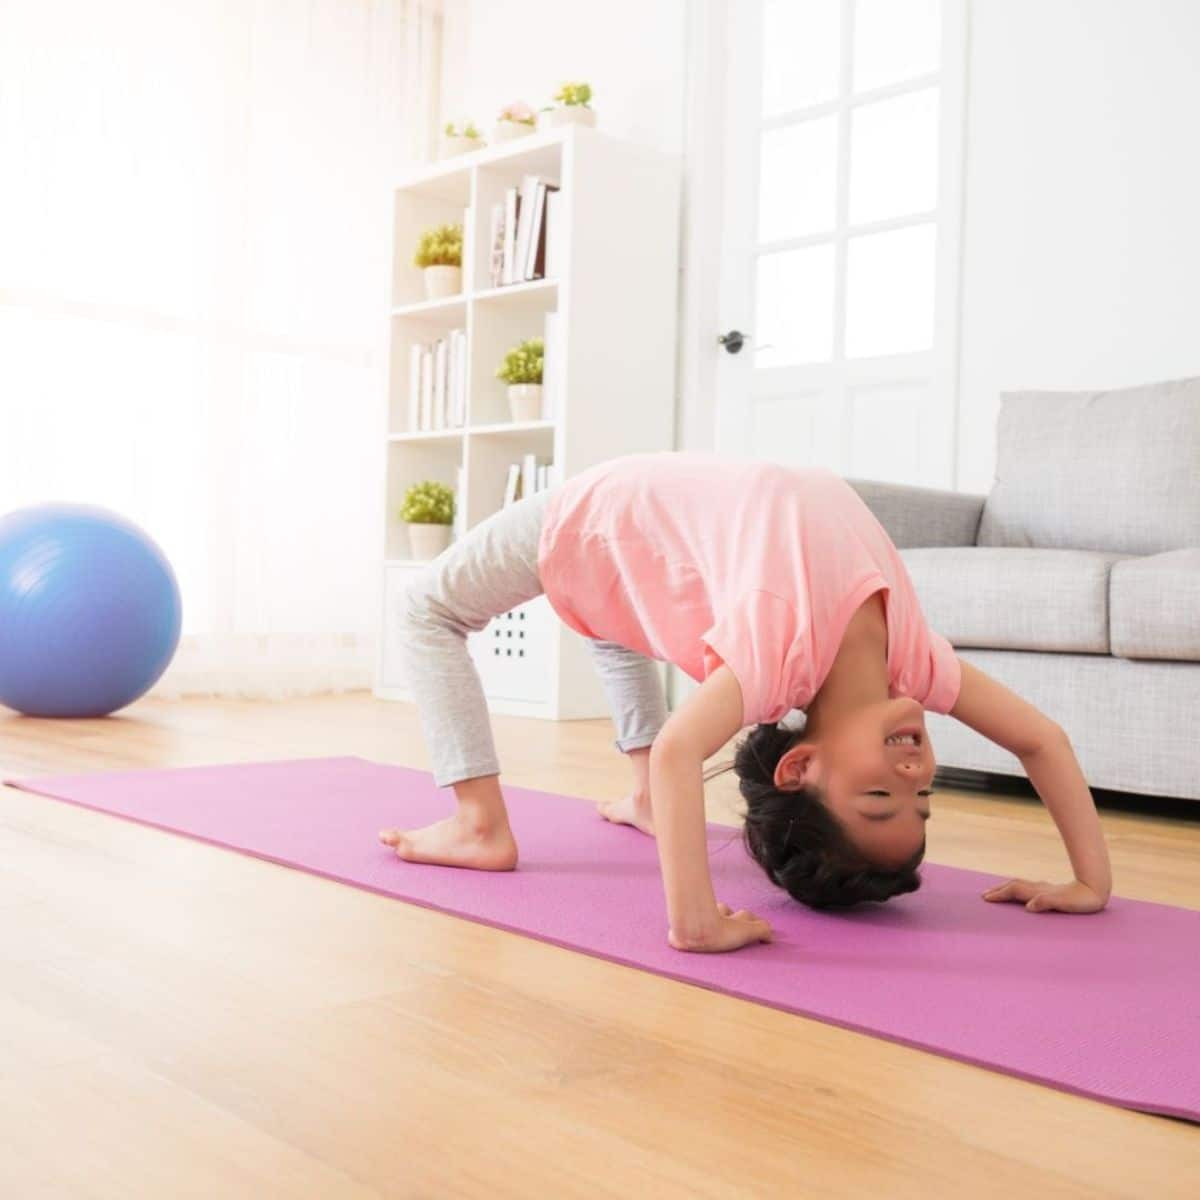 a boy in a pink shirt and trousers does a crab position on a purple yoga mat in a living room